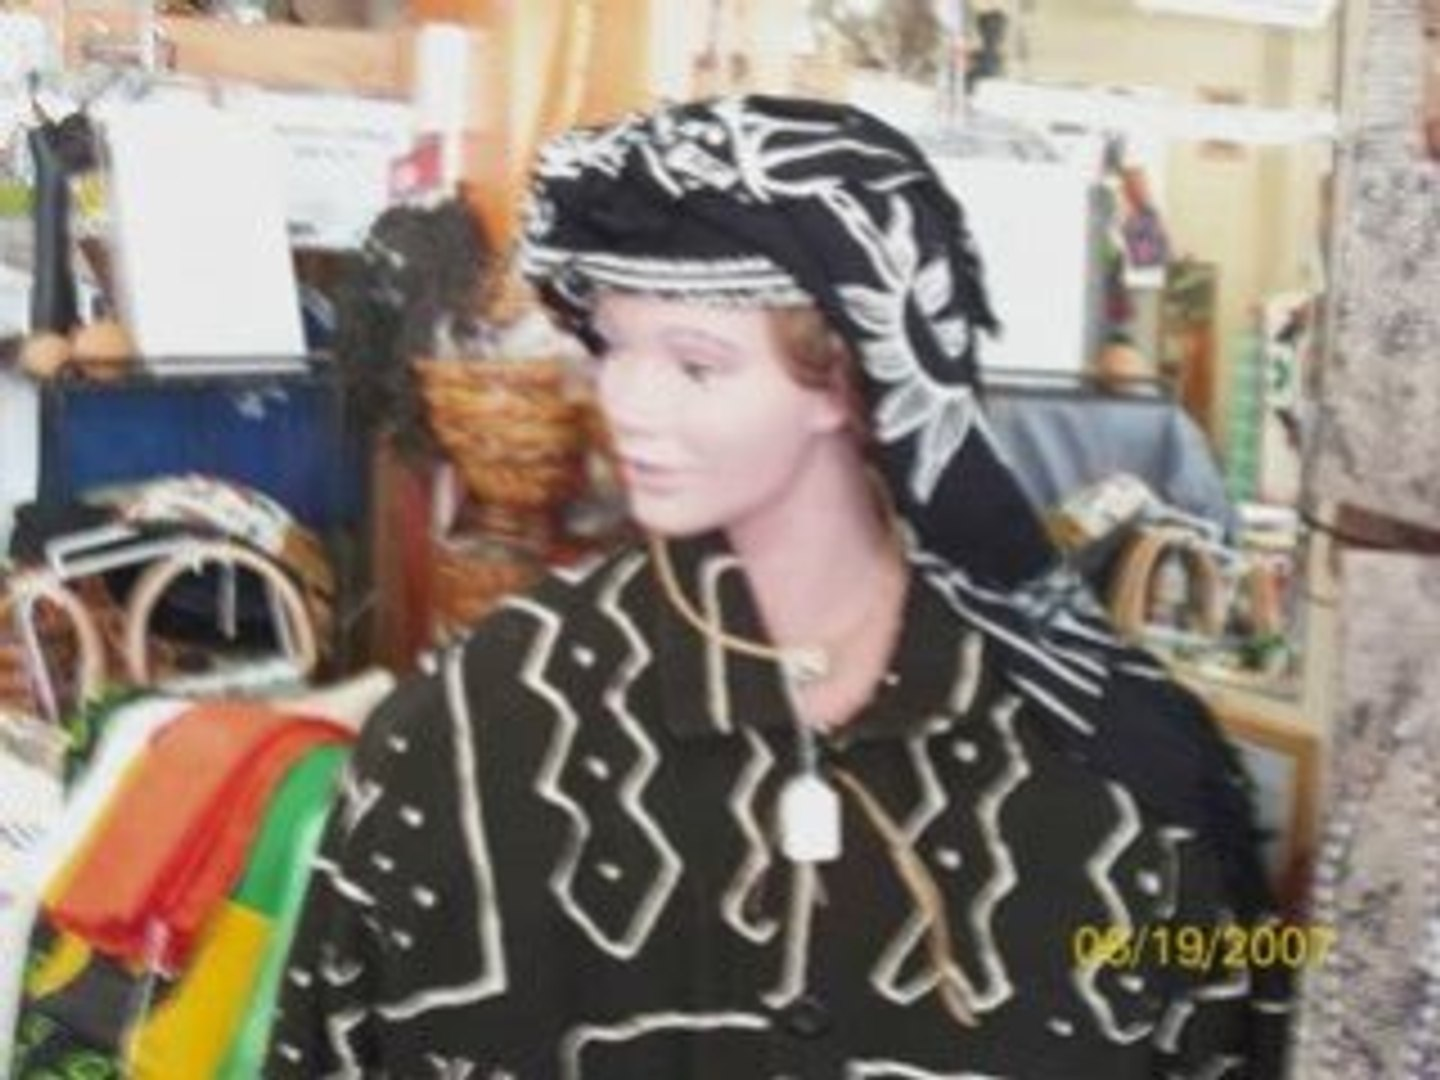 Authentic African jewelry, Handmade African drums and more